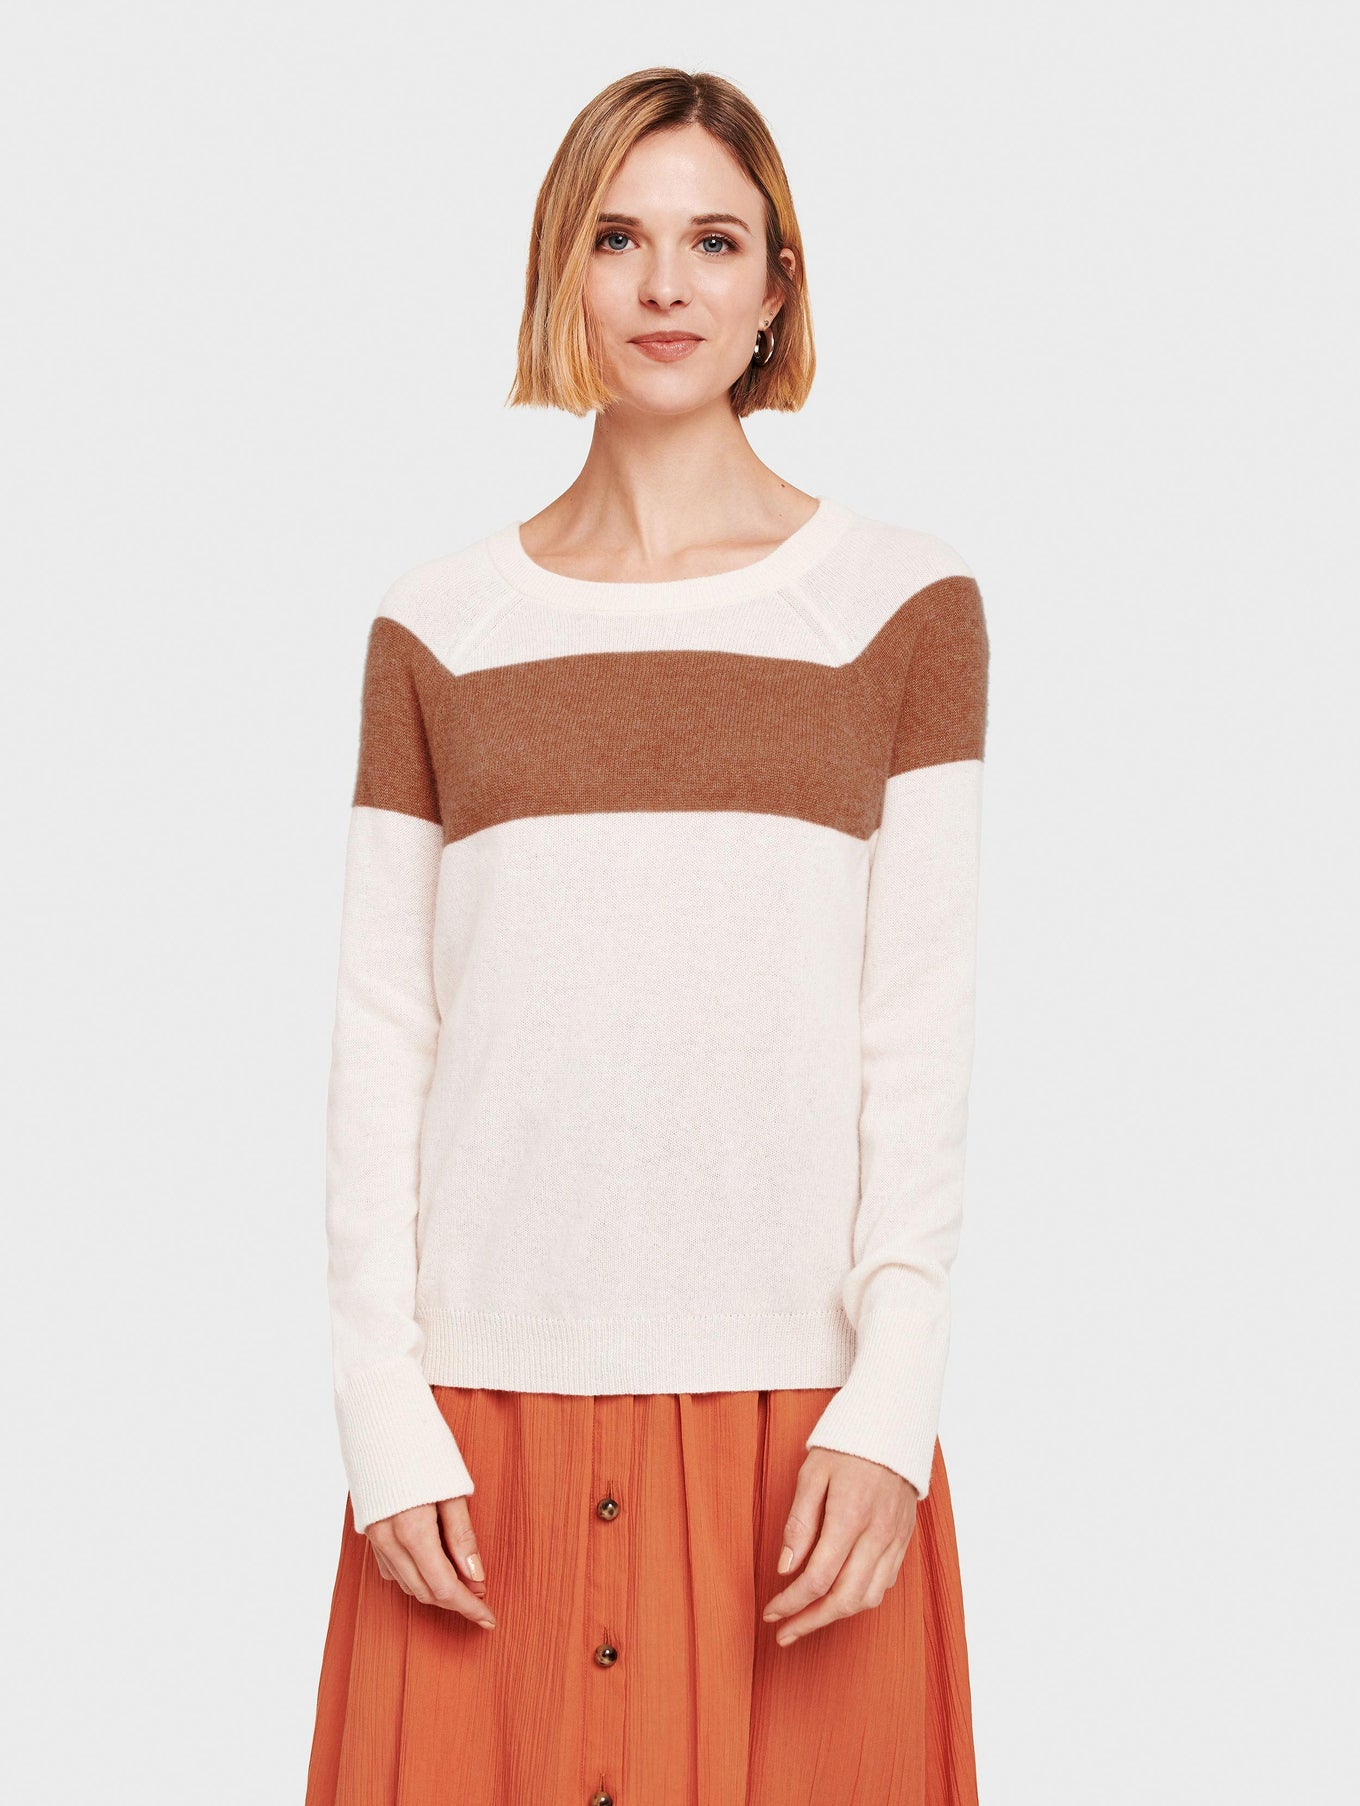 Essential Cashmere Block Stripe Sweatshirt - White/Sandalwood - Image 2